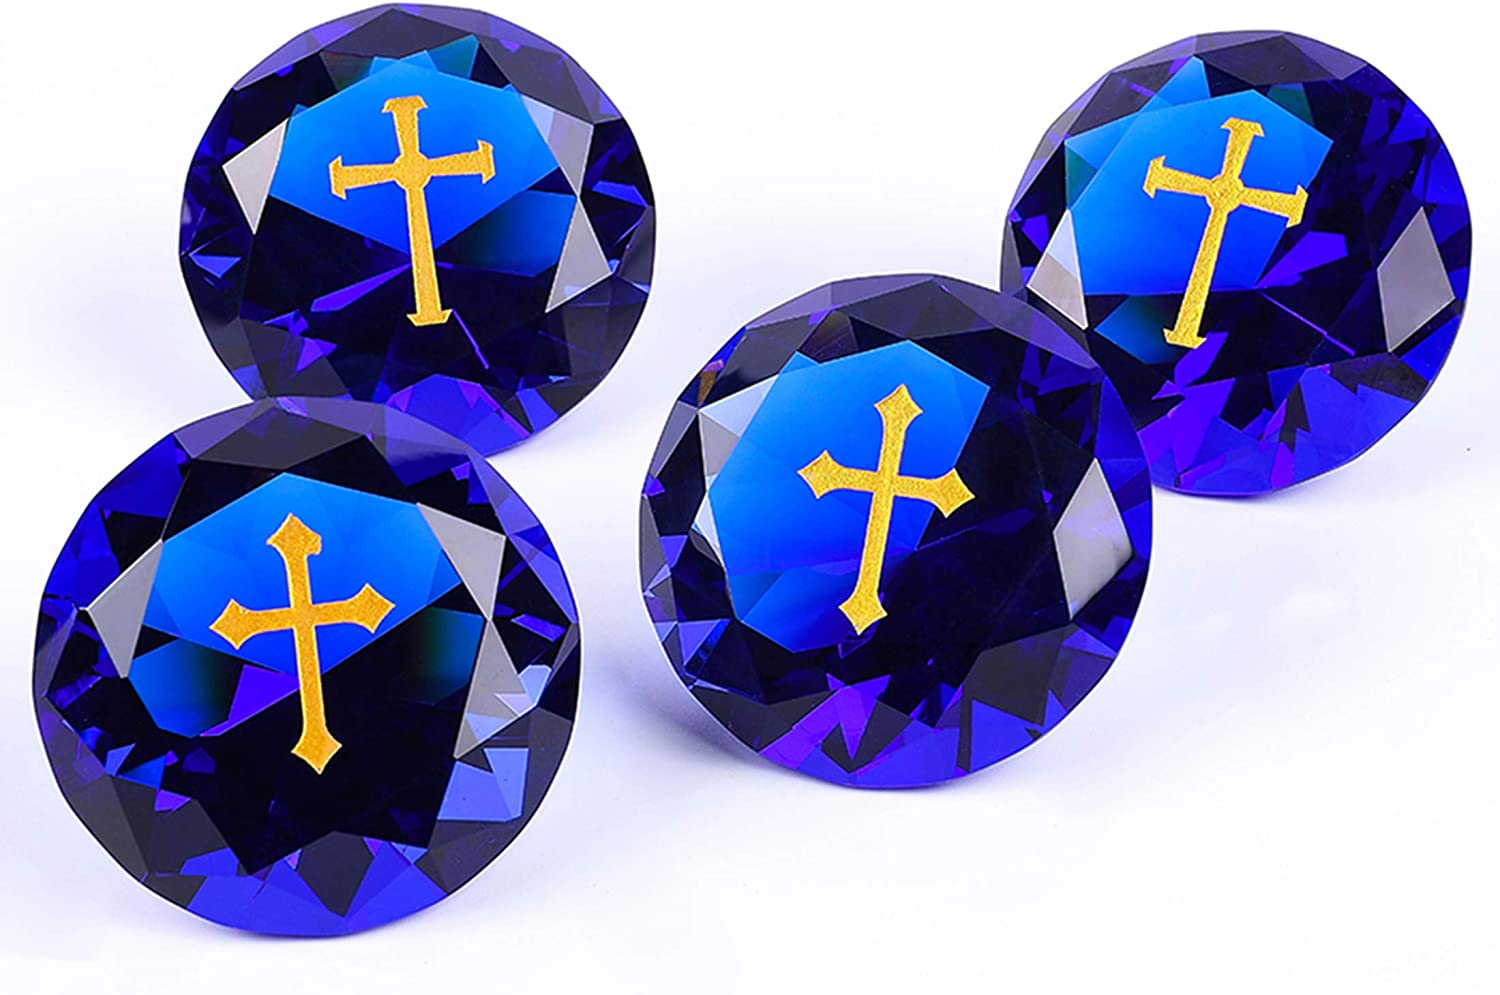 "12PCS Cross RockImpact 60mm (2.5"") Extra-Large Engraved Sapphire Blue Crystal Diamond Home Décor, Prism Suncatcher Rainbow Maker, Wedding Table Decoration, Clinging Cross Heavenly Blessings Gifts"